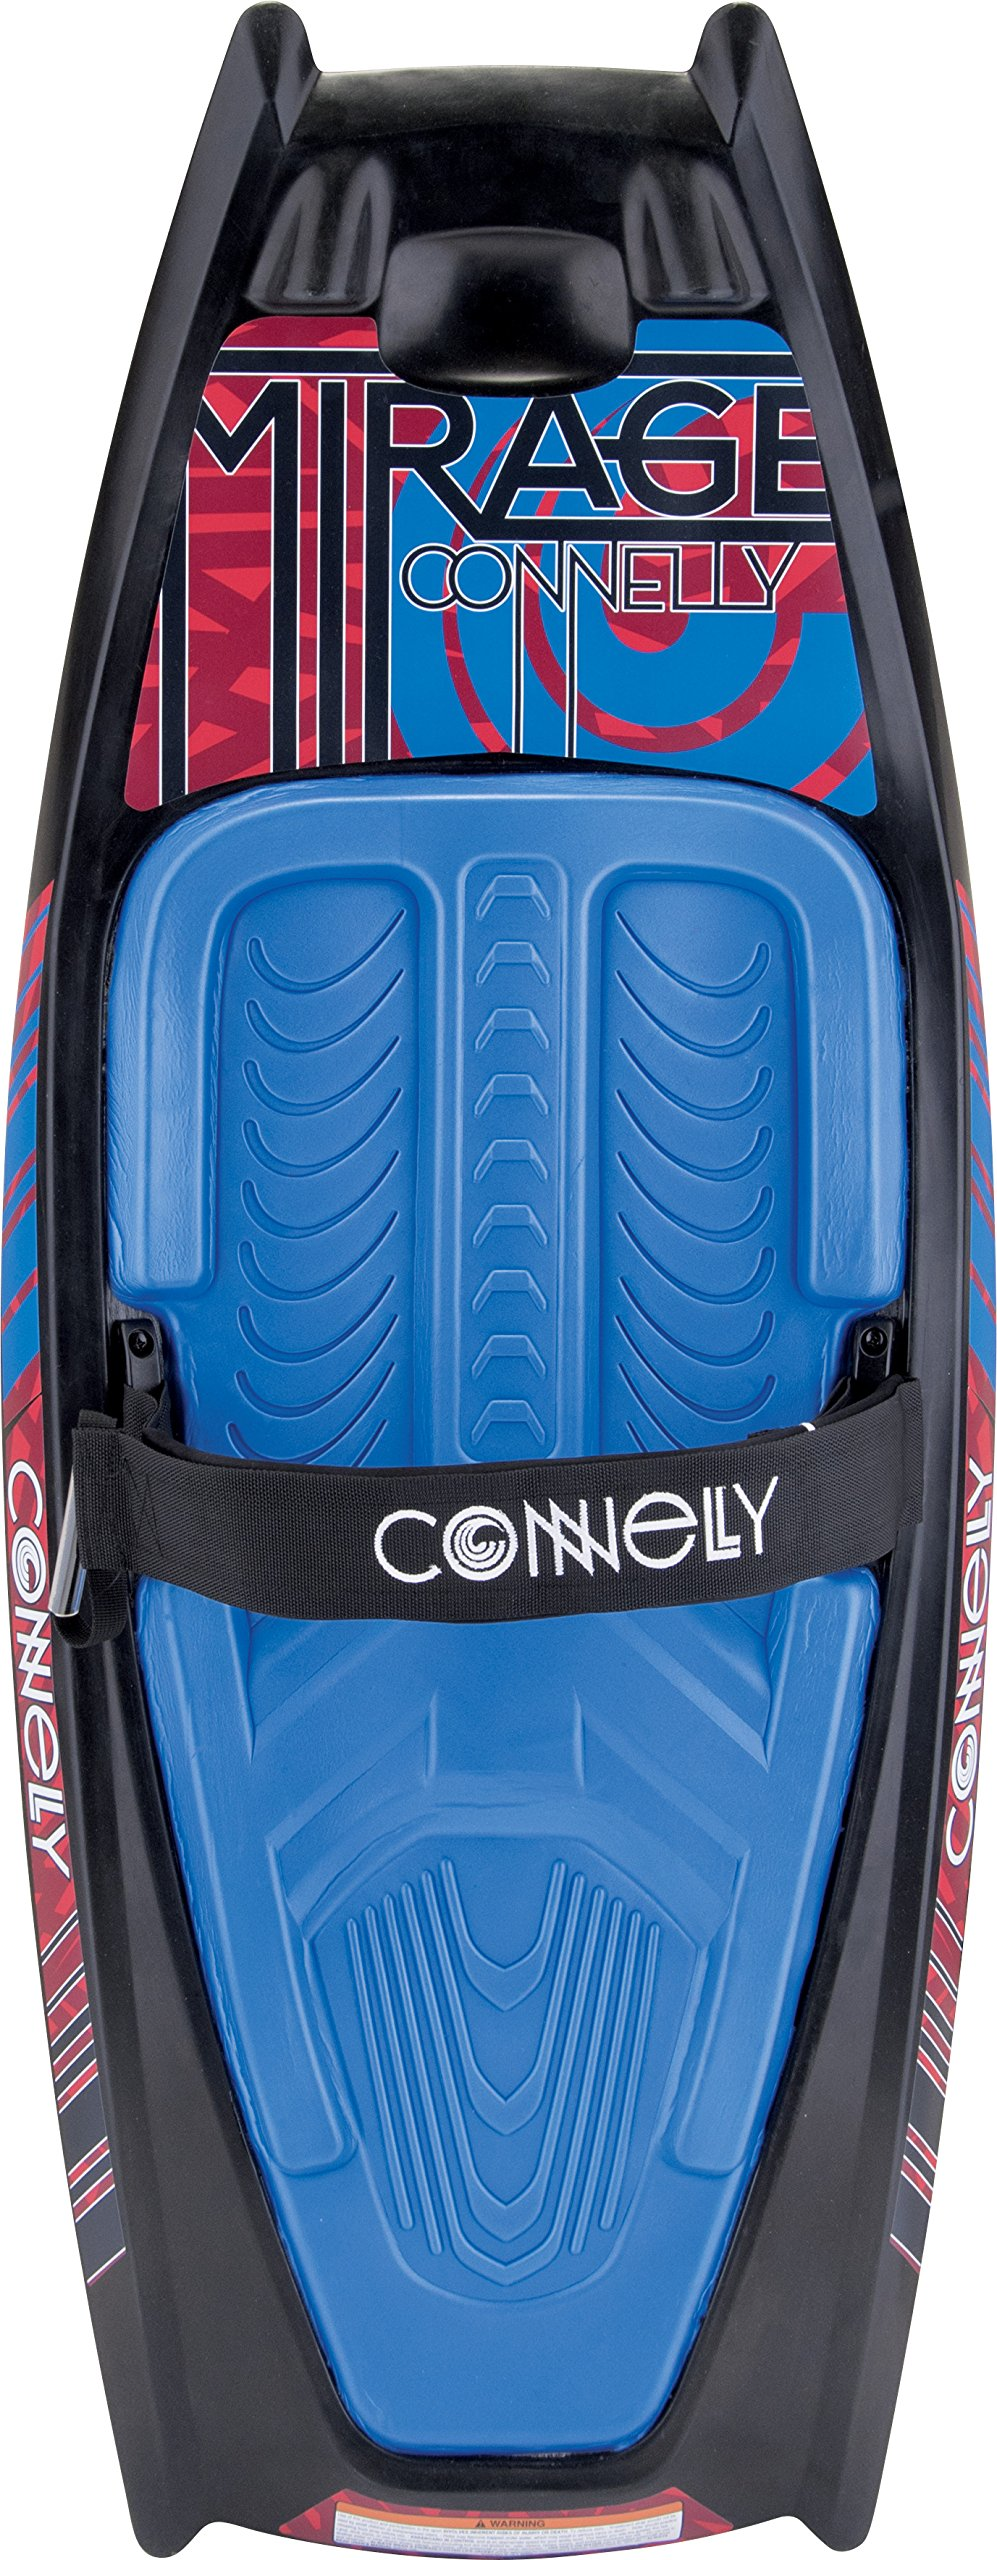 Connelly Mirage 2017 Water Skiing Kneeboard